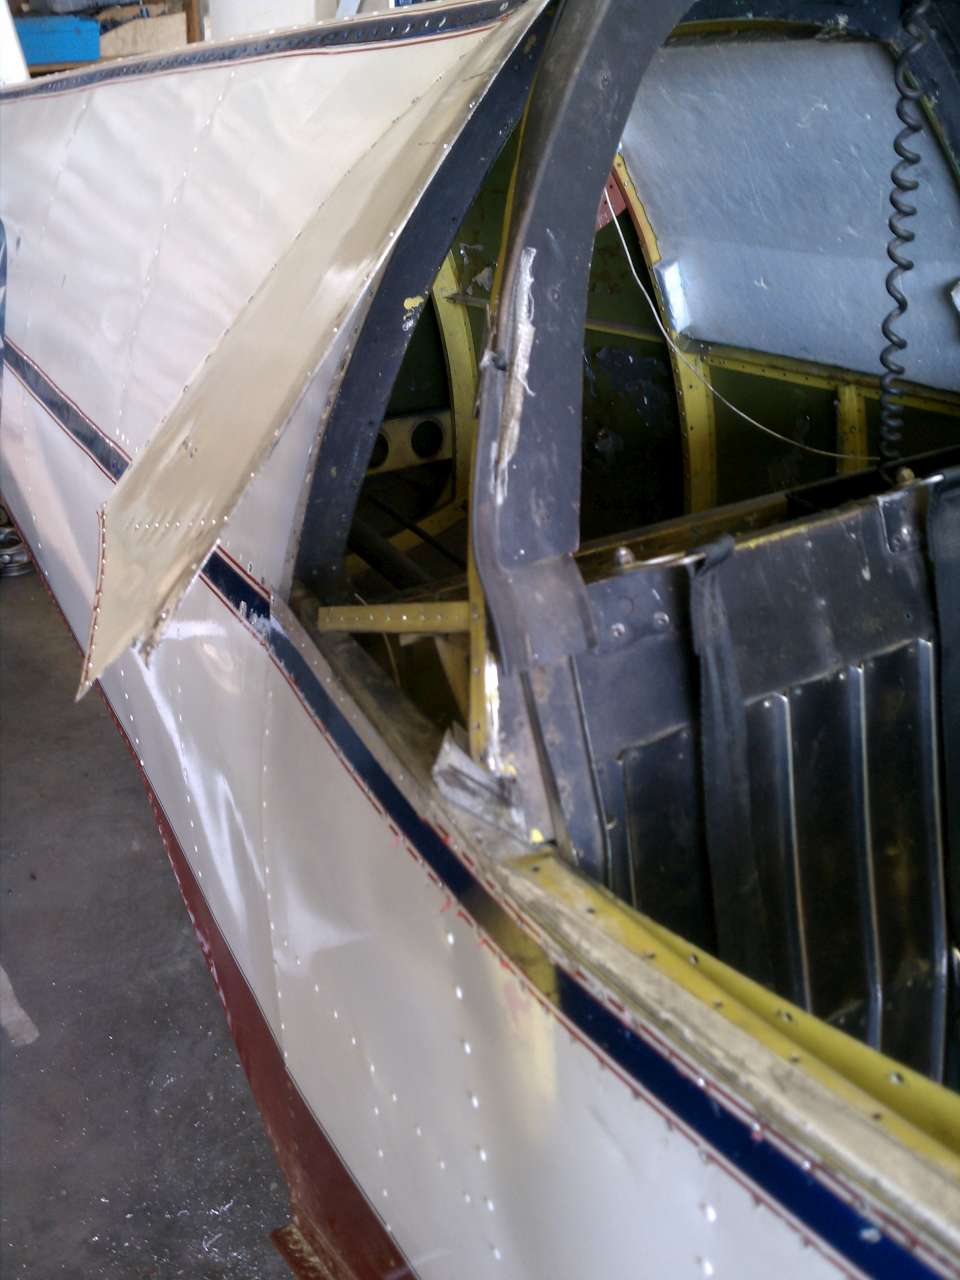 Right longeron rear cabin corner after disassembly